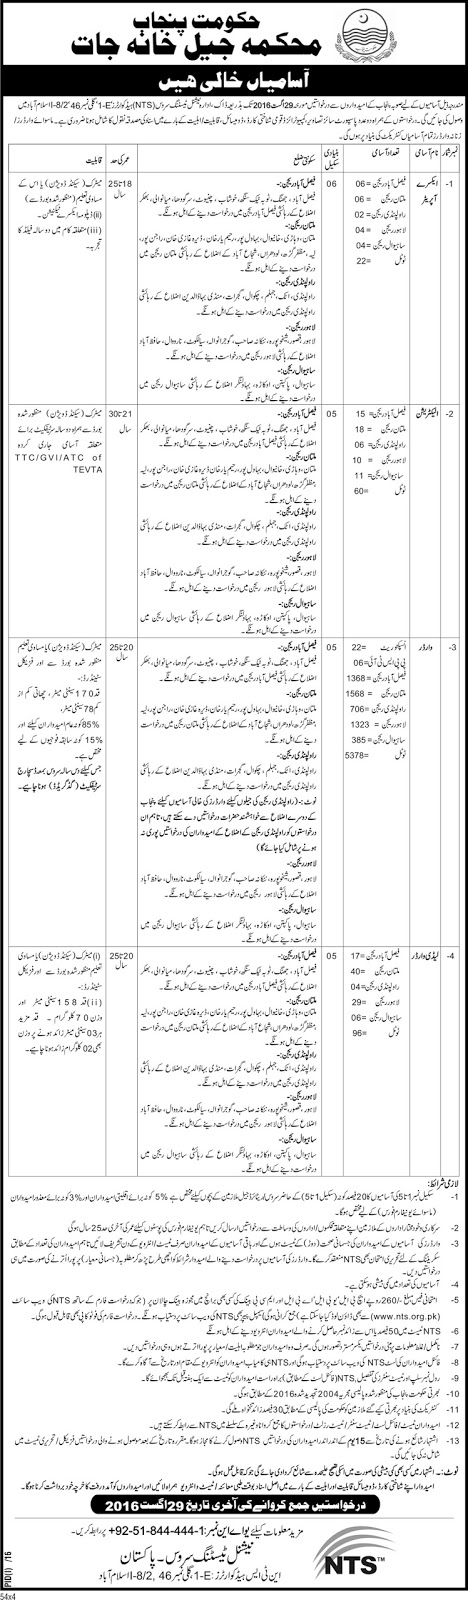 Govt Jobs in Pakistan Prison Department Jobs in Punjab Latest Jobs 2016 NTS Jobs